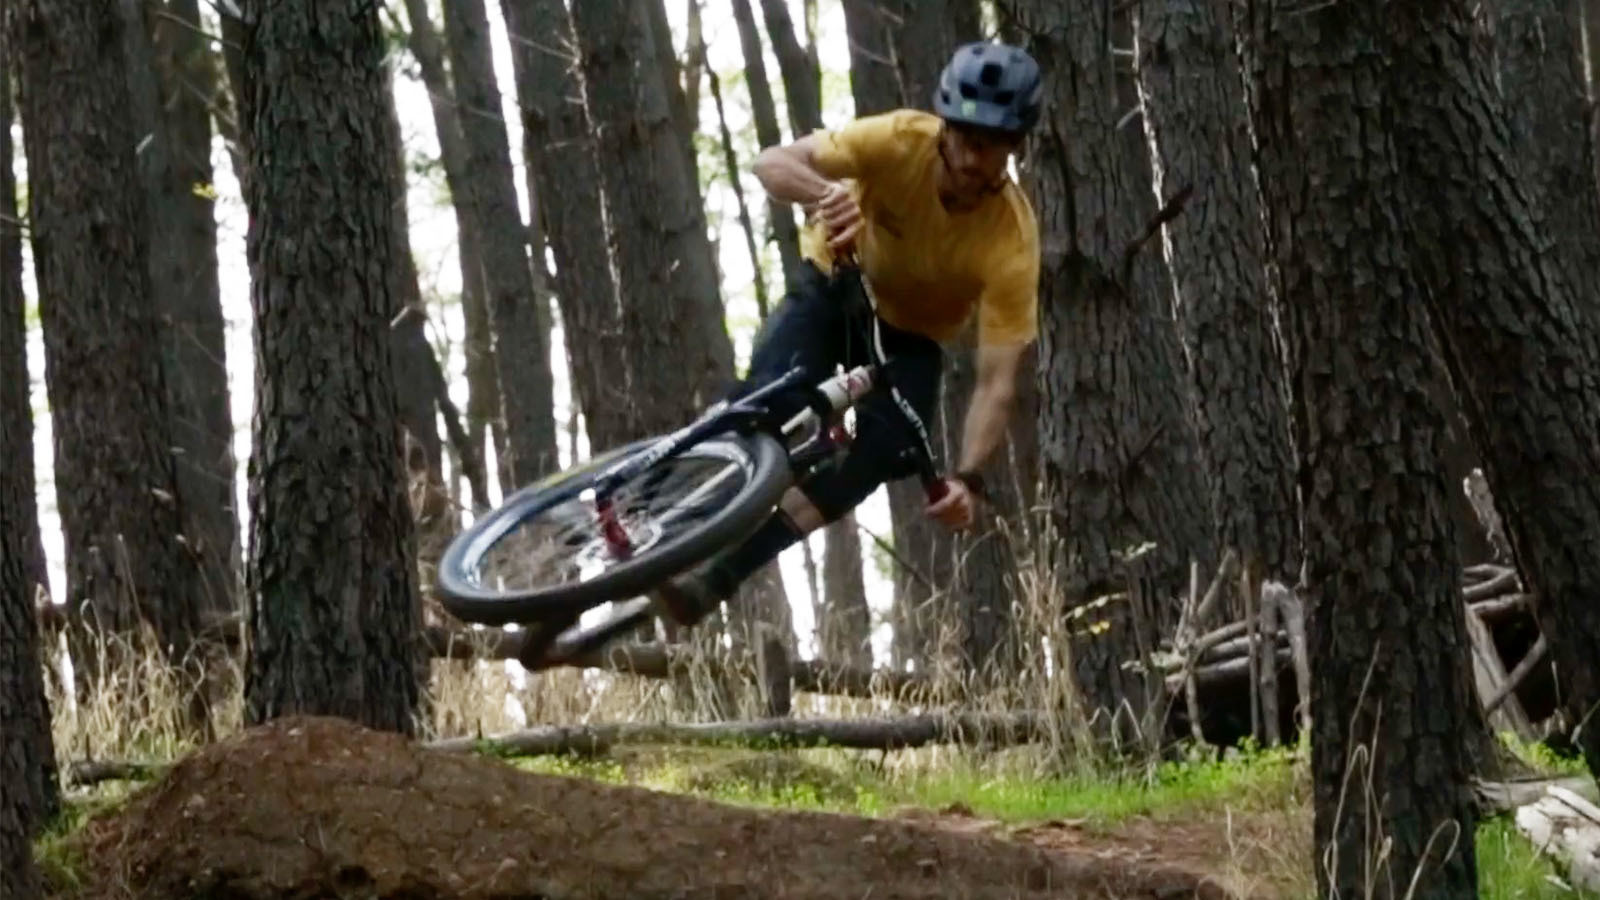 The Hard Way - Connor Fearon Gets Rowdy on His Hardtail